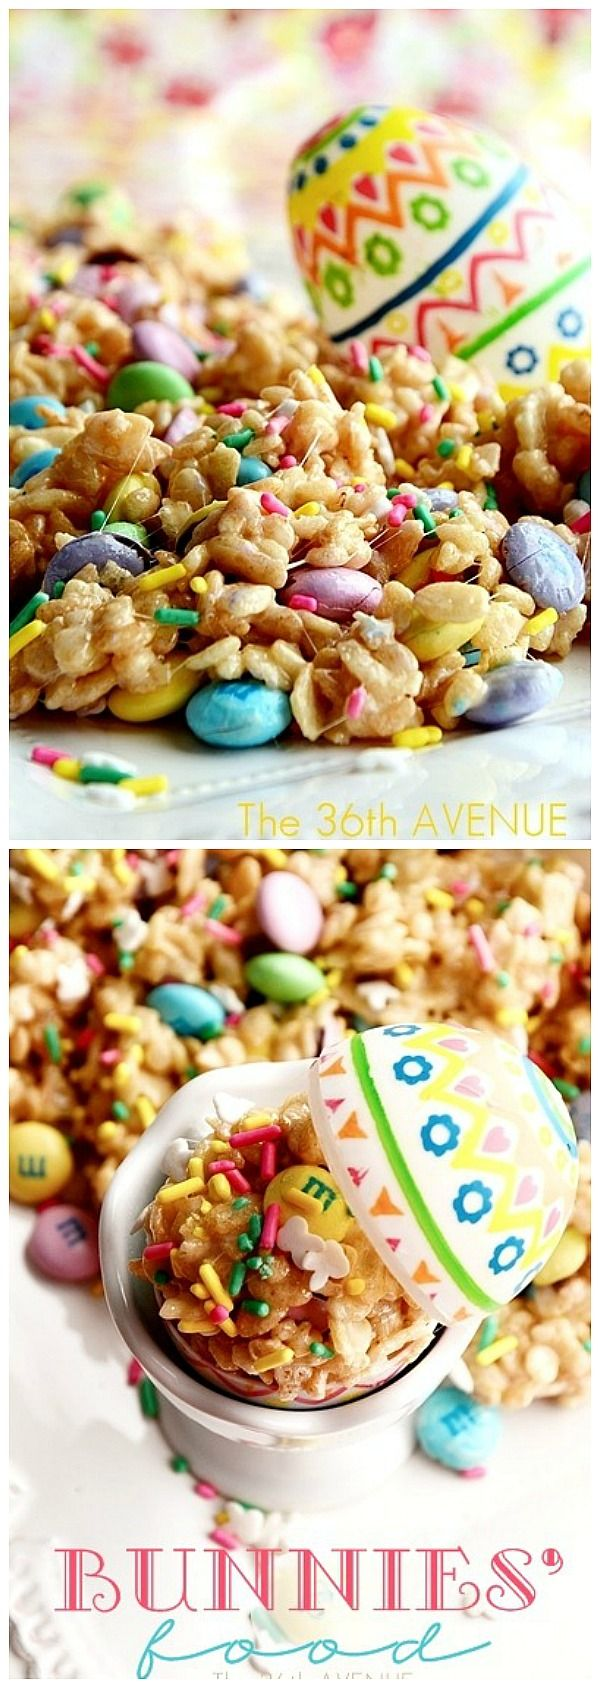 Festive Rice Crispy Treats. This recipe is easy, fun and yummy... Kids love this stuff! #yearofcelebrations #easter